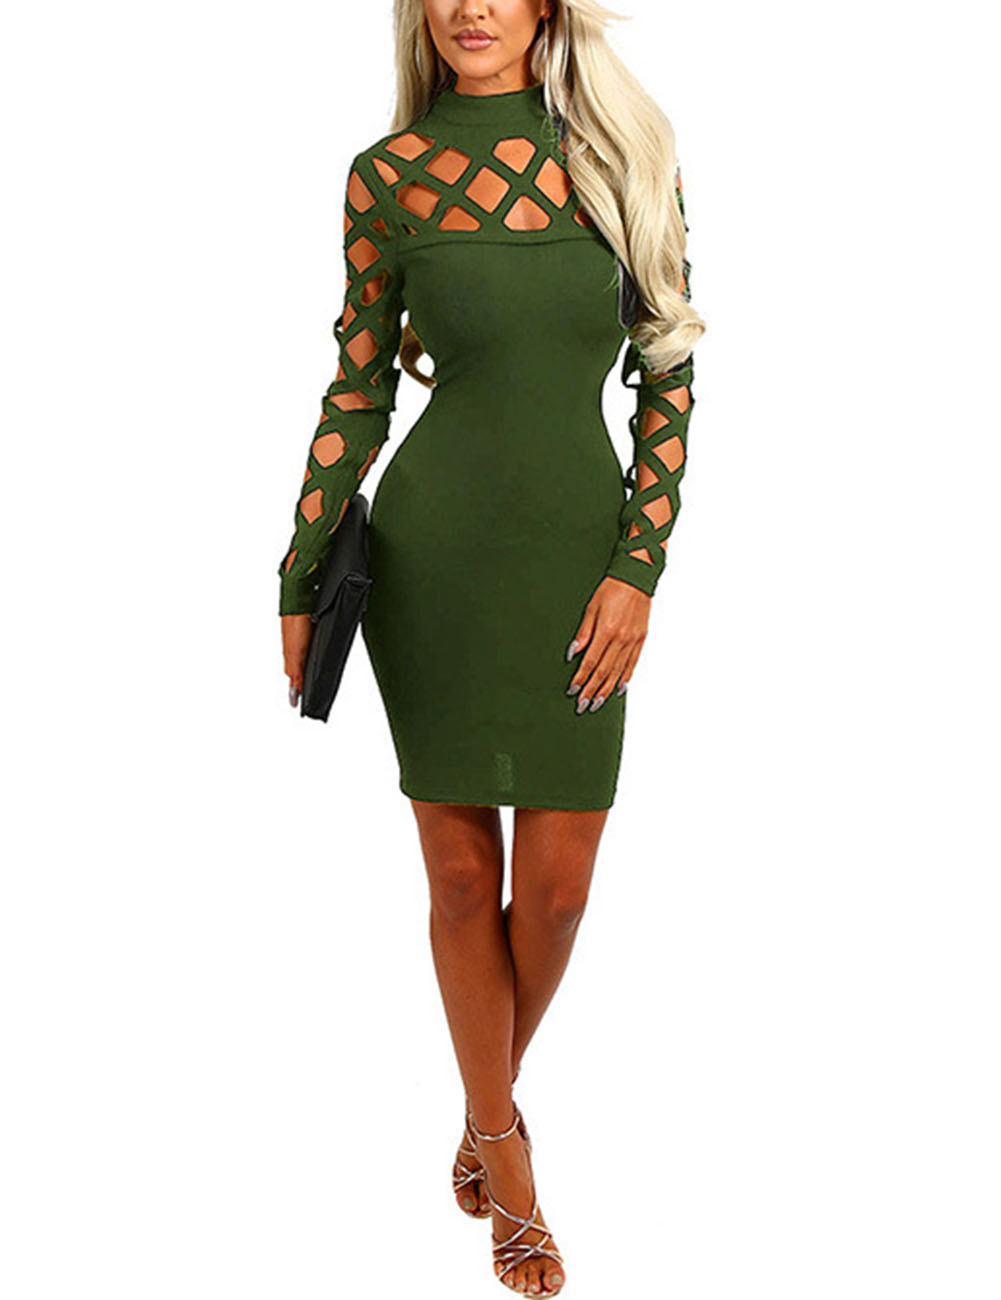 Lady Sexy Bodycon Dress High Neck Round Collar Hollowed-out Mid-thigh Length Pencil Dress Valentines Gift